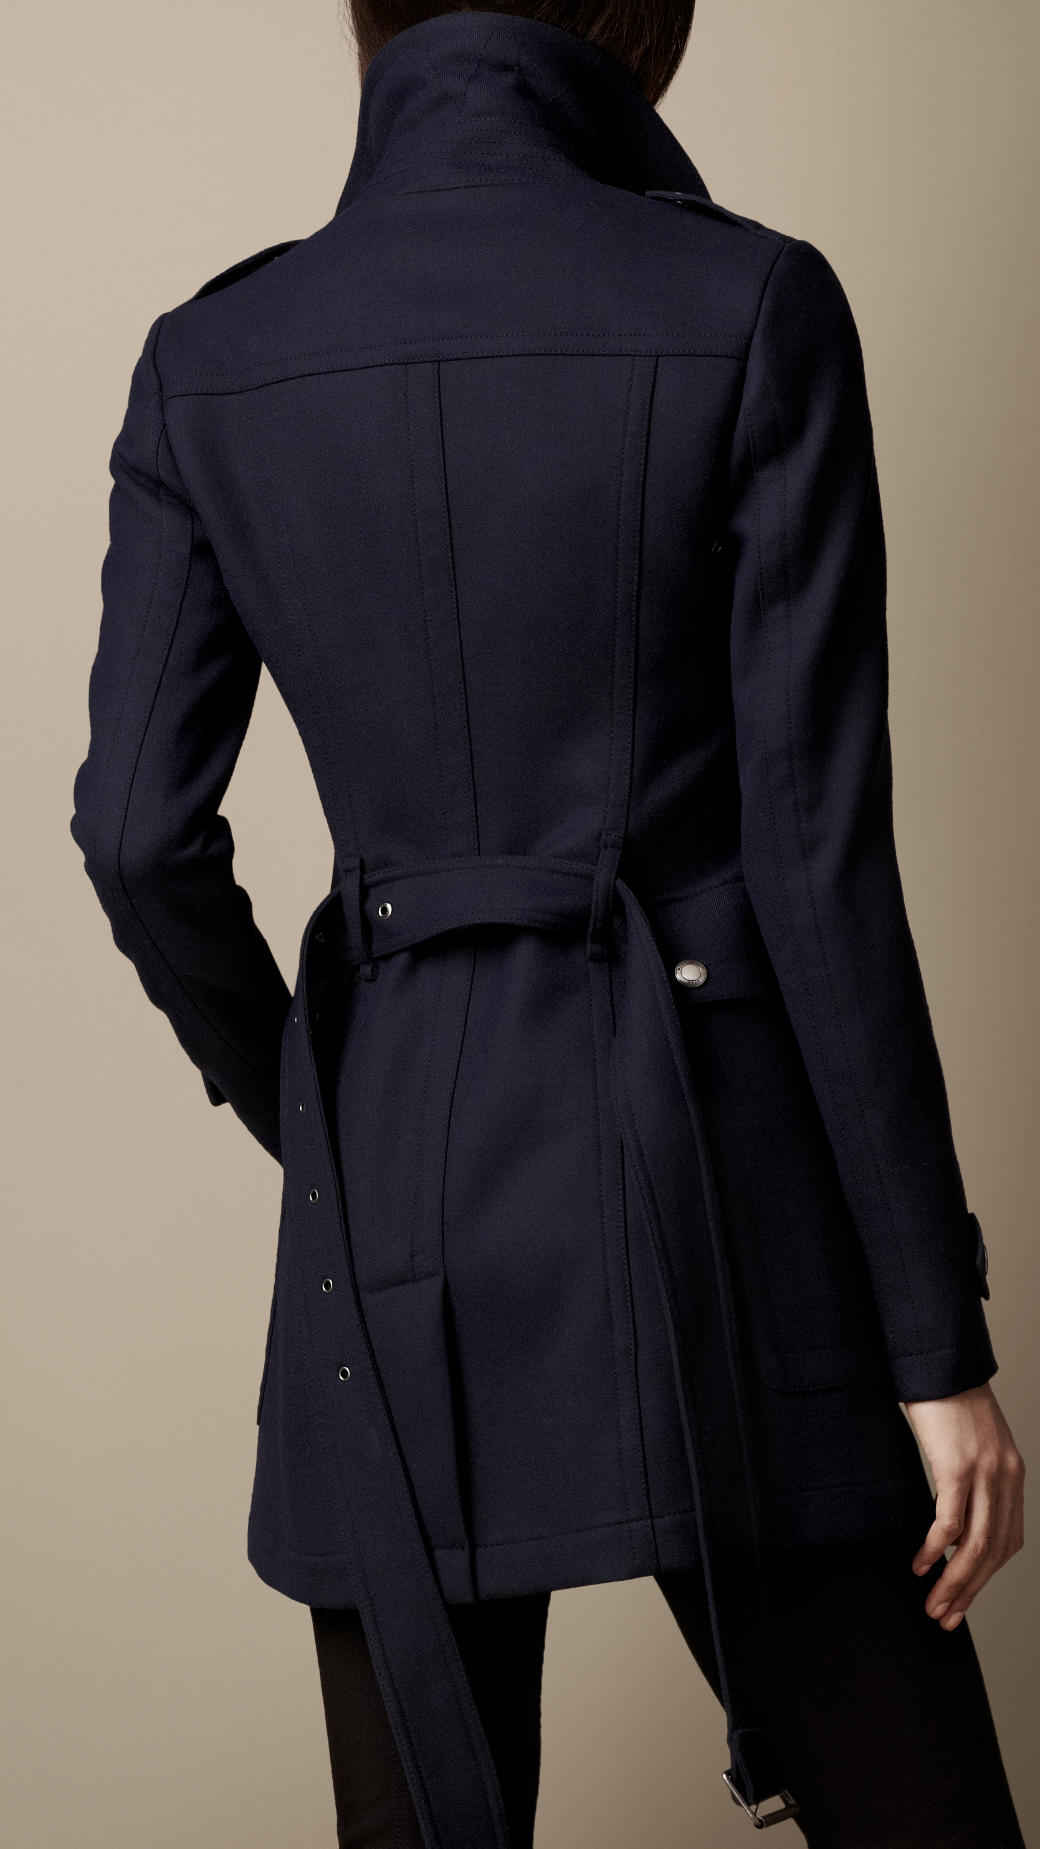 Burberry Short Lightweight Wool Trench Coat in Blue | Lyst